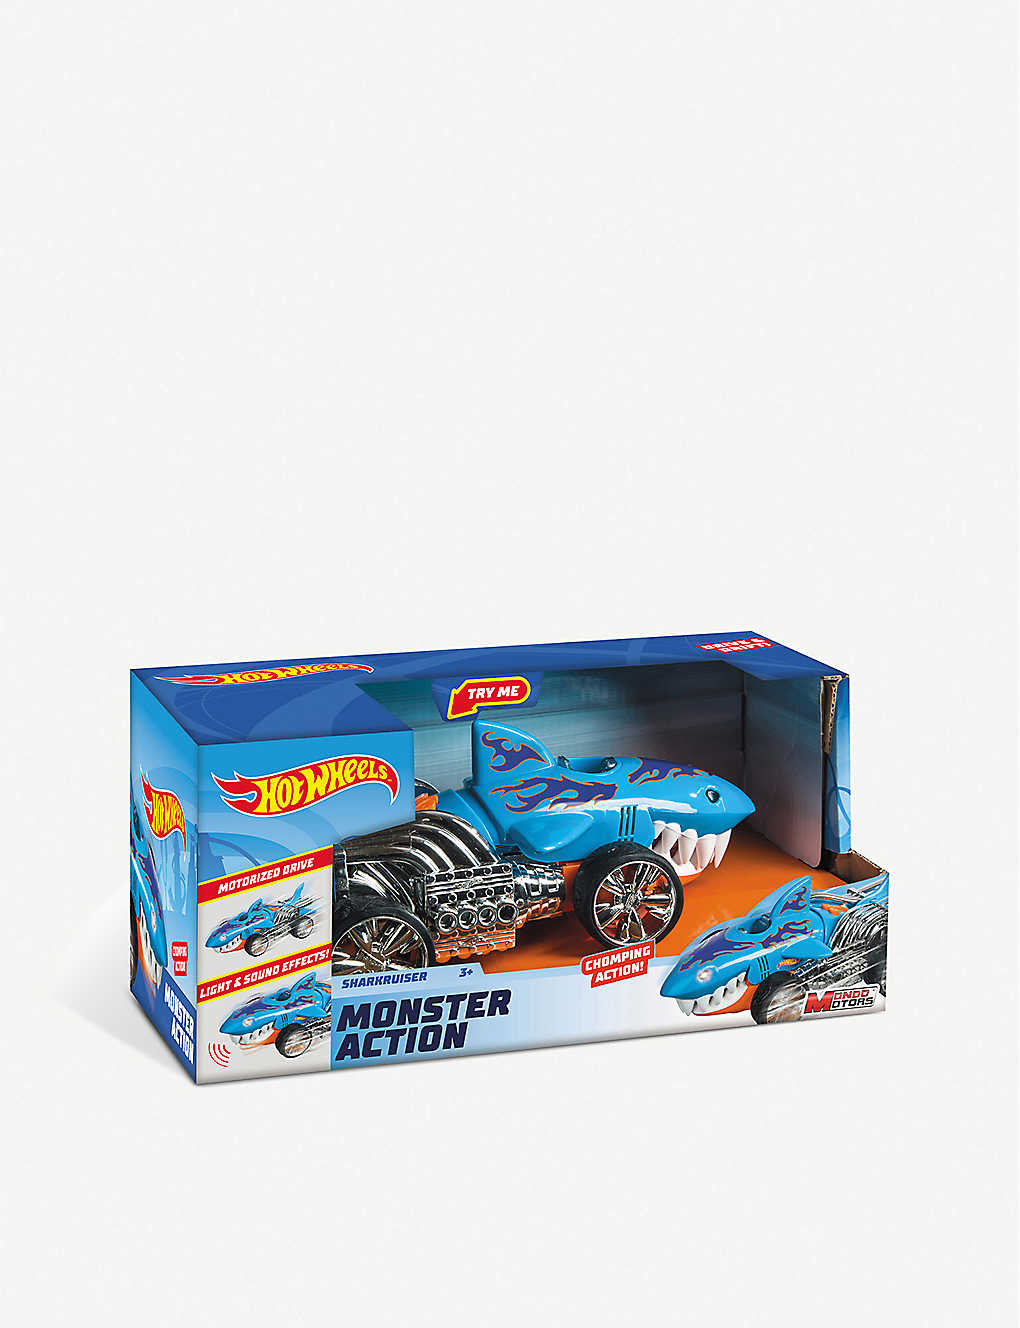 HOTWHEELS: Monster action shark cruiser